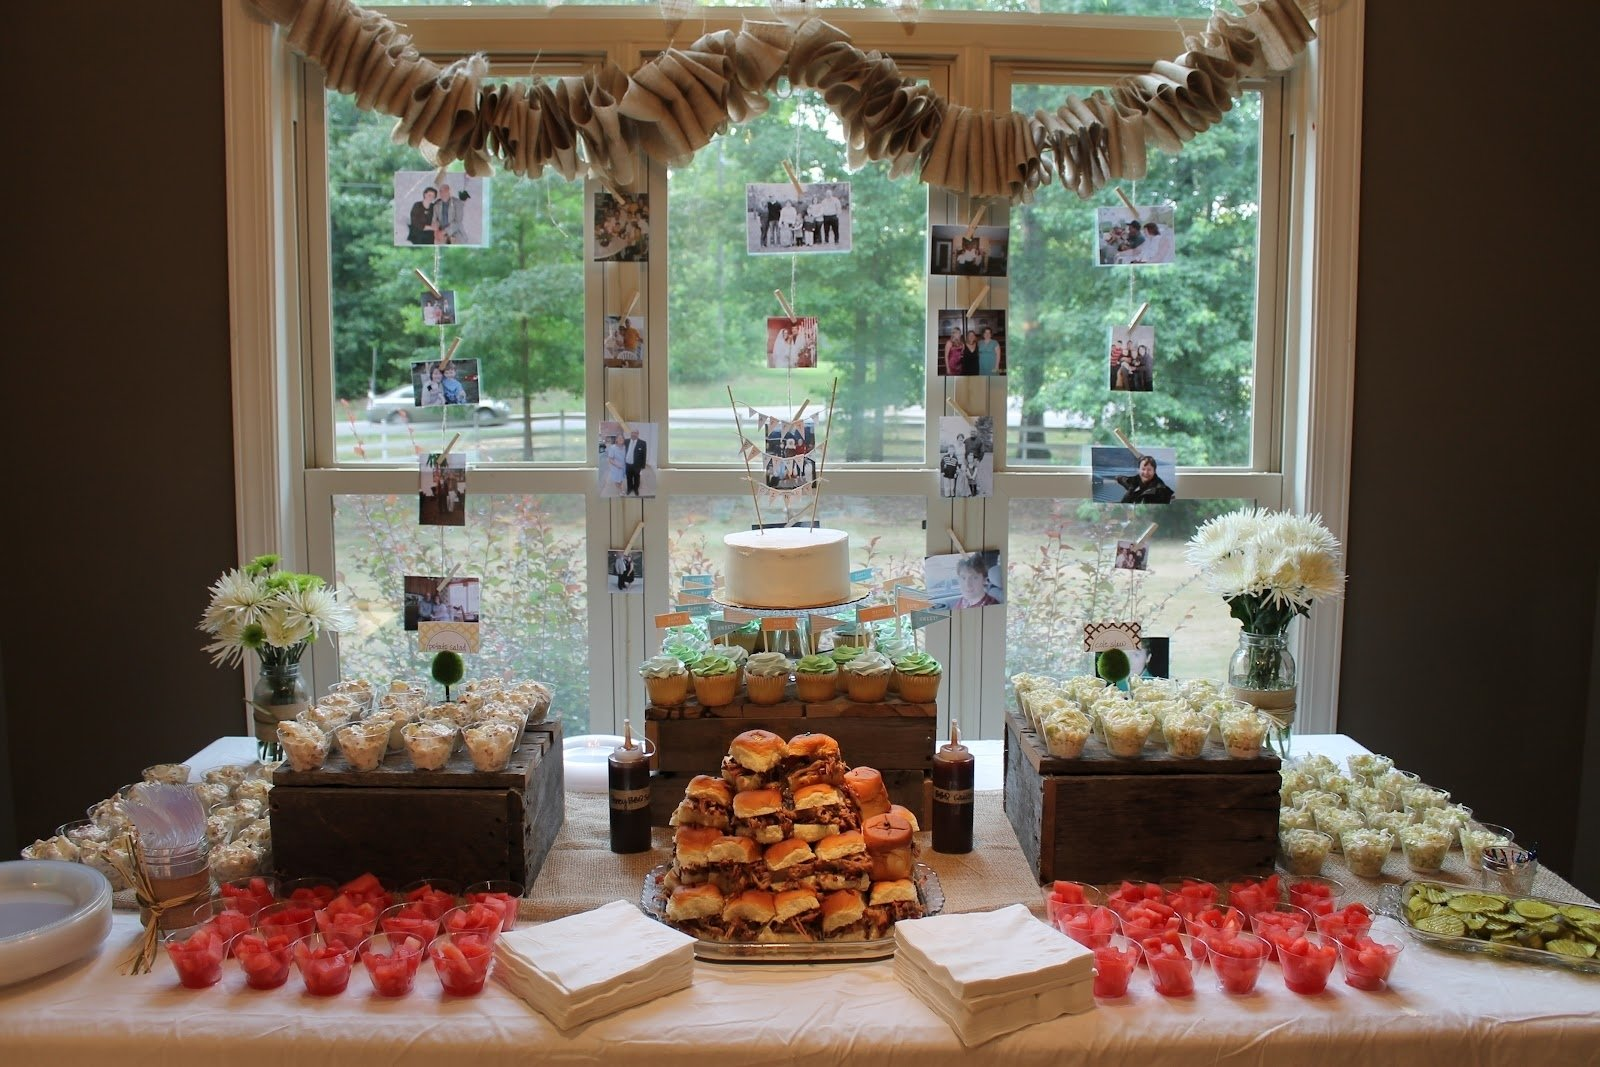 10 Wonderful Ideas To Celebrate 50Th Birthday barbeque and burlap a surprise 50th birthday party life in the 2021